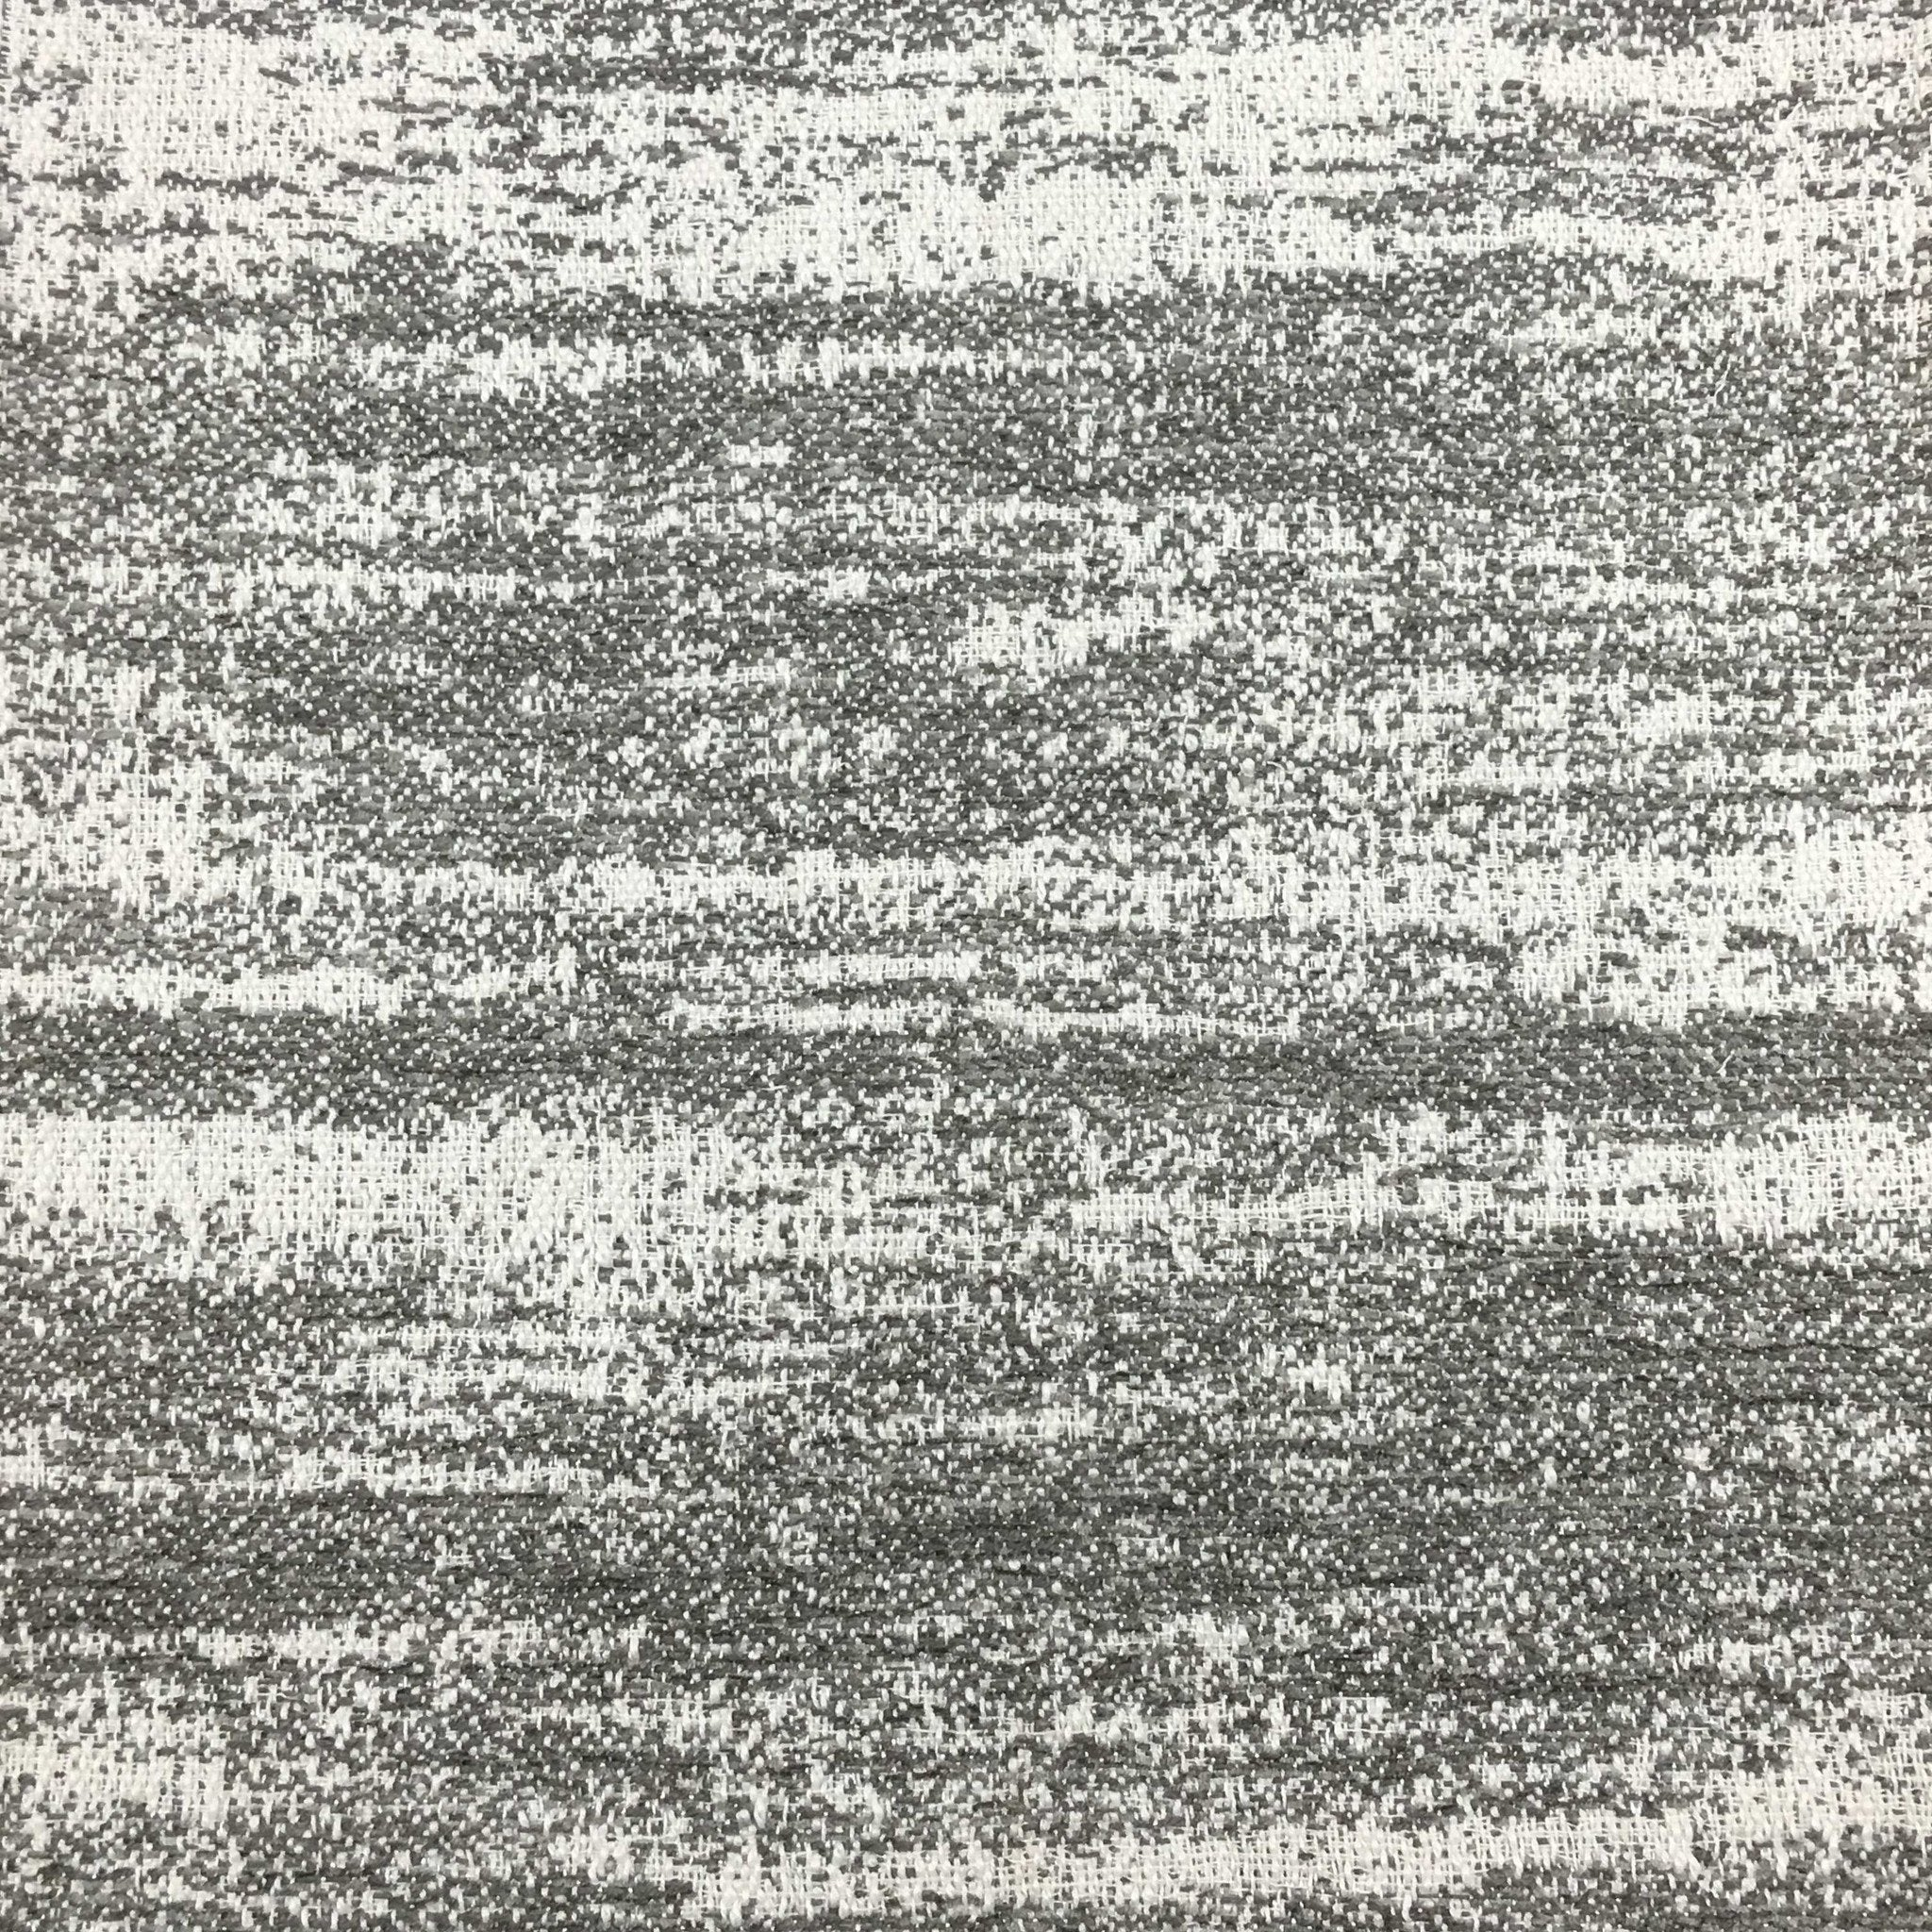 Sandy - Woven Texture Upholstery Fabric by the Yard - Available in 16 Colors